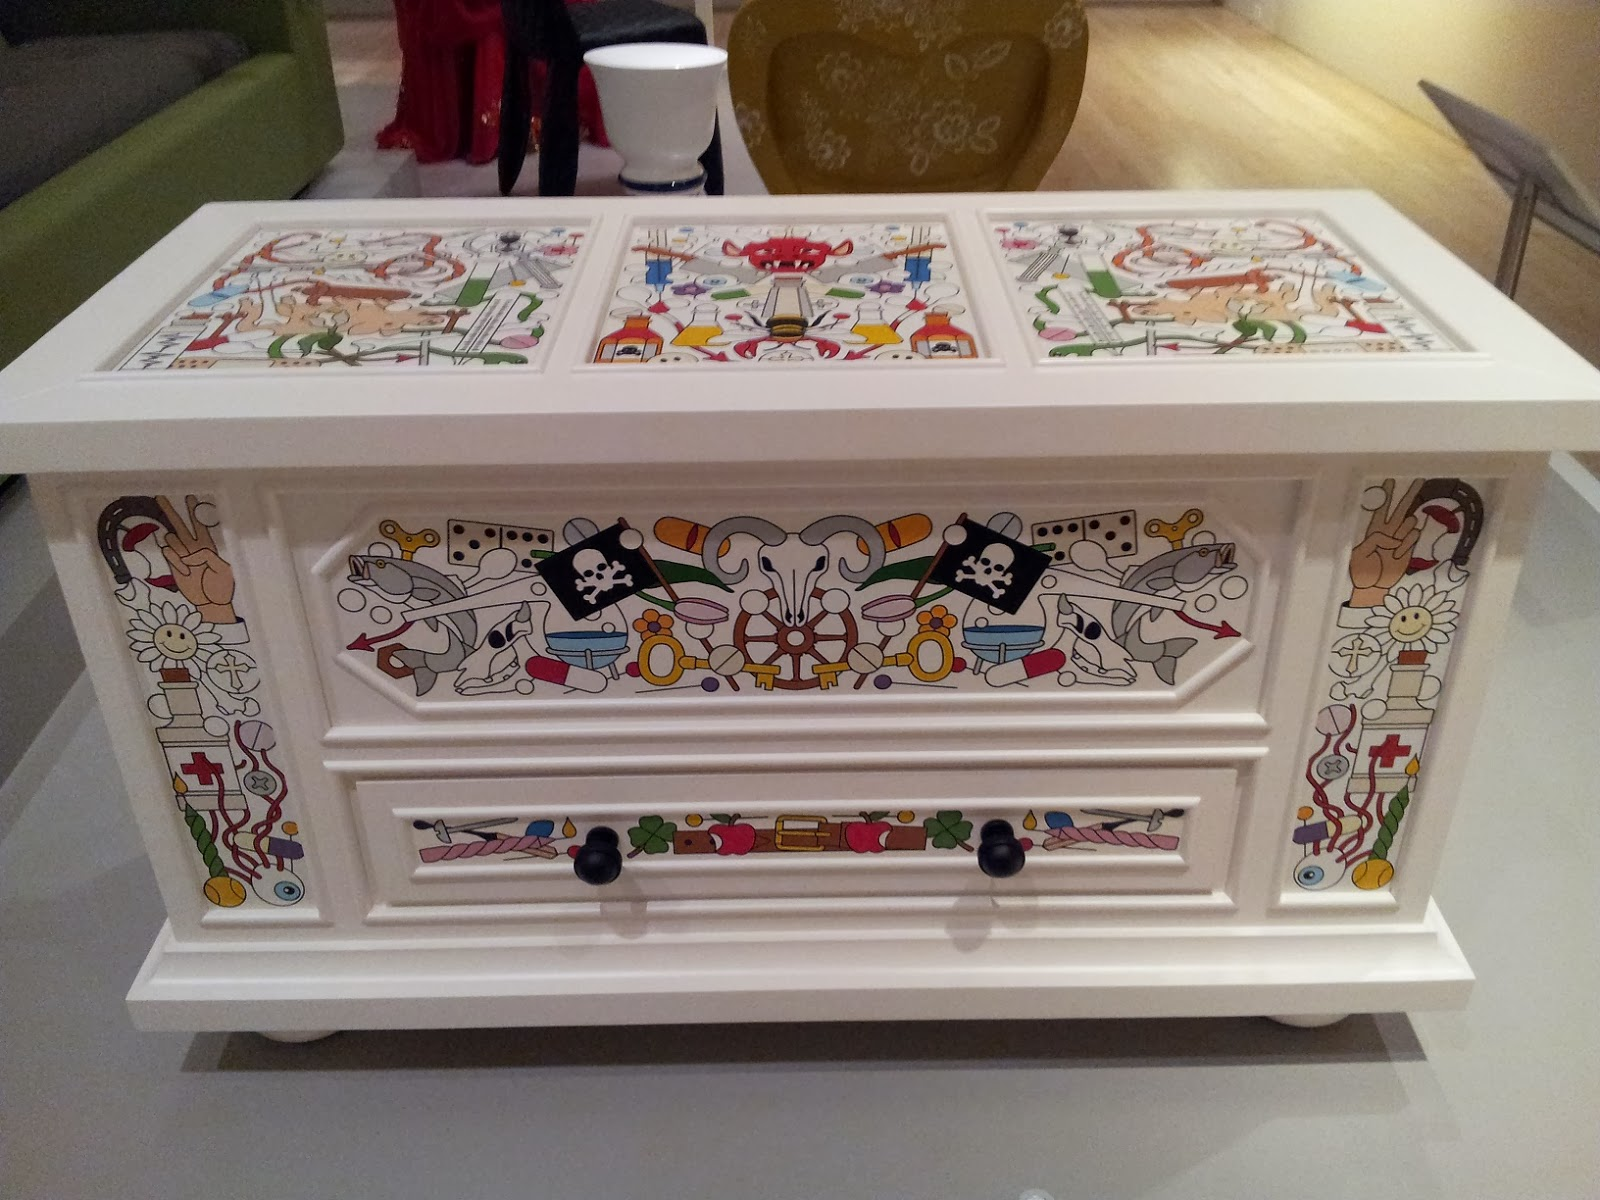 Also From The Design Exhibit At The Ima Heres A Great Dresser For The Kids Room